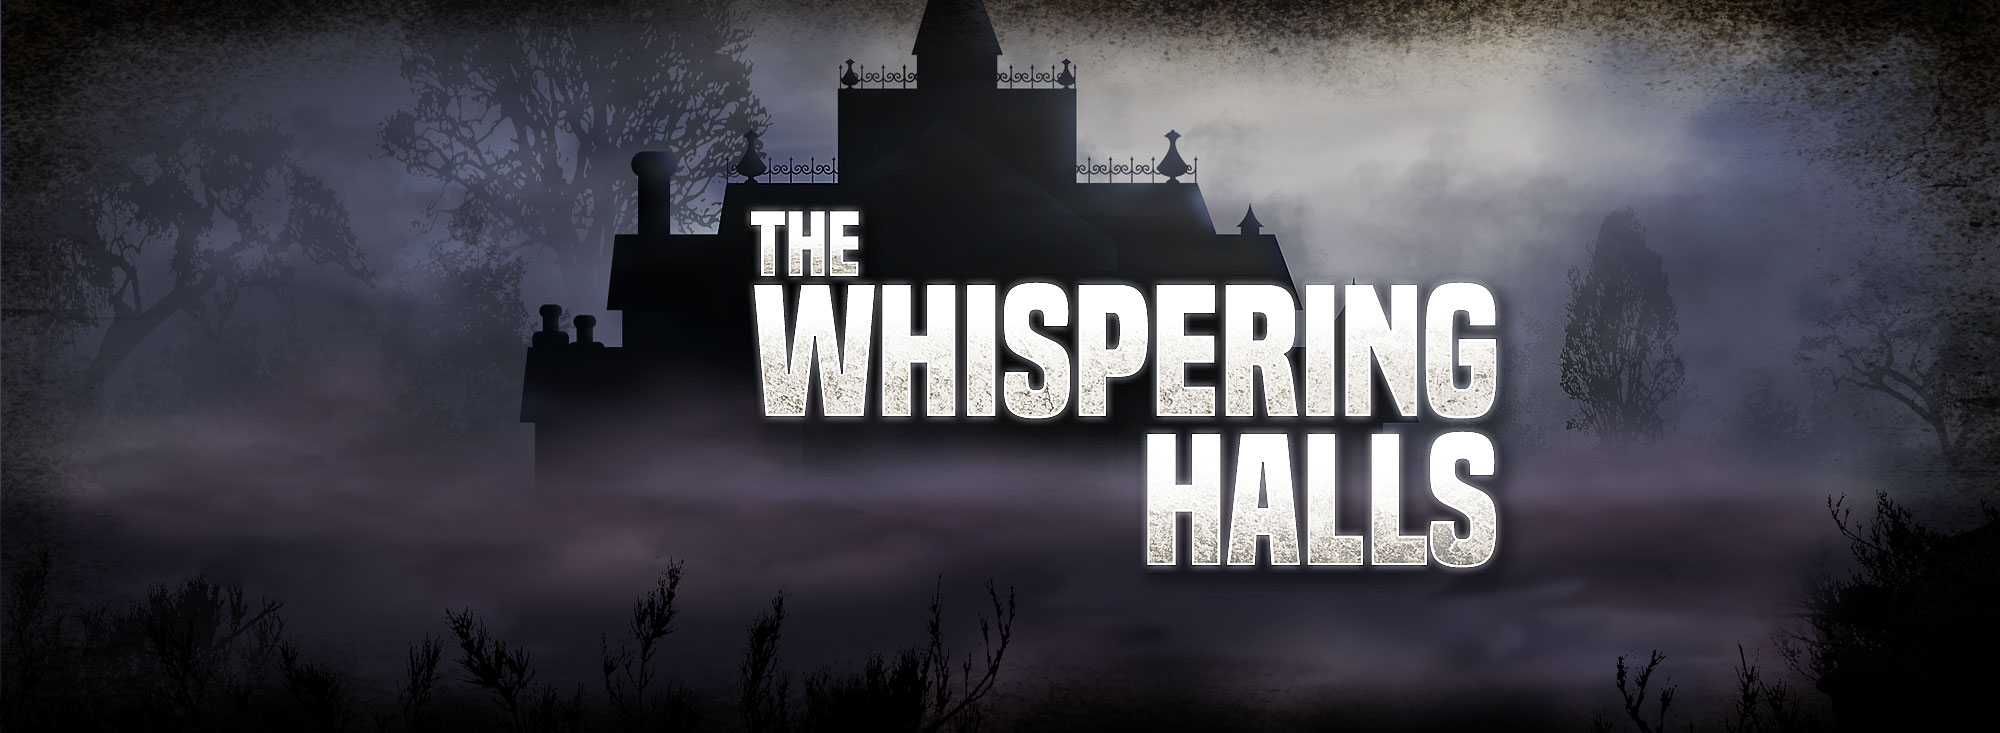 the whispering halls escape room